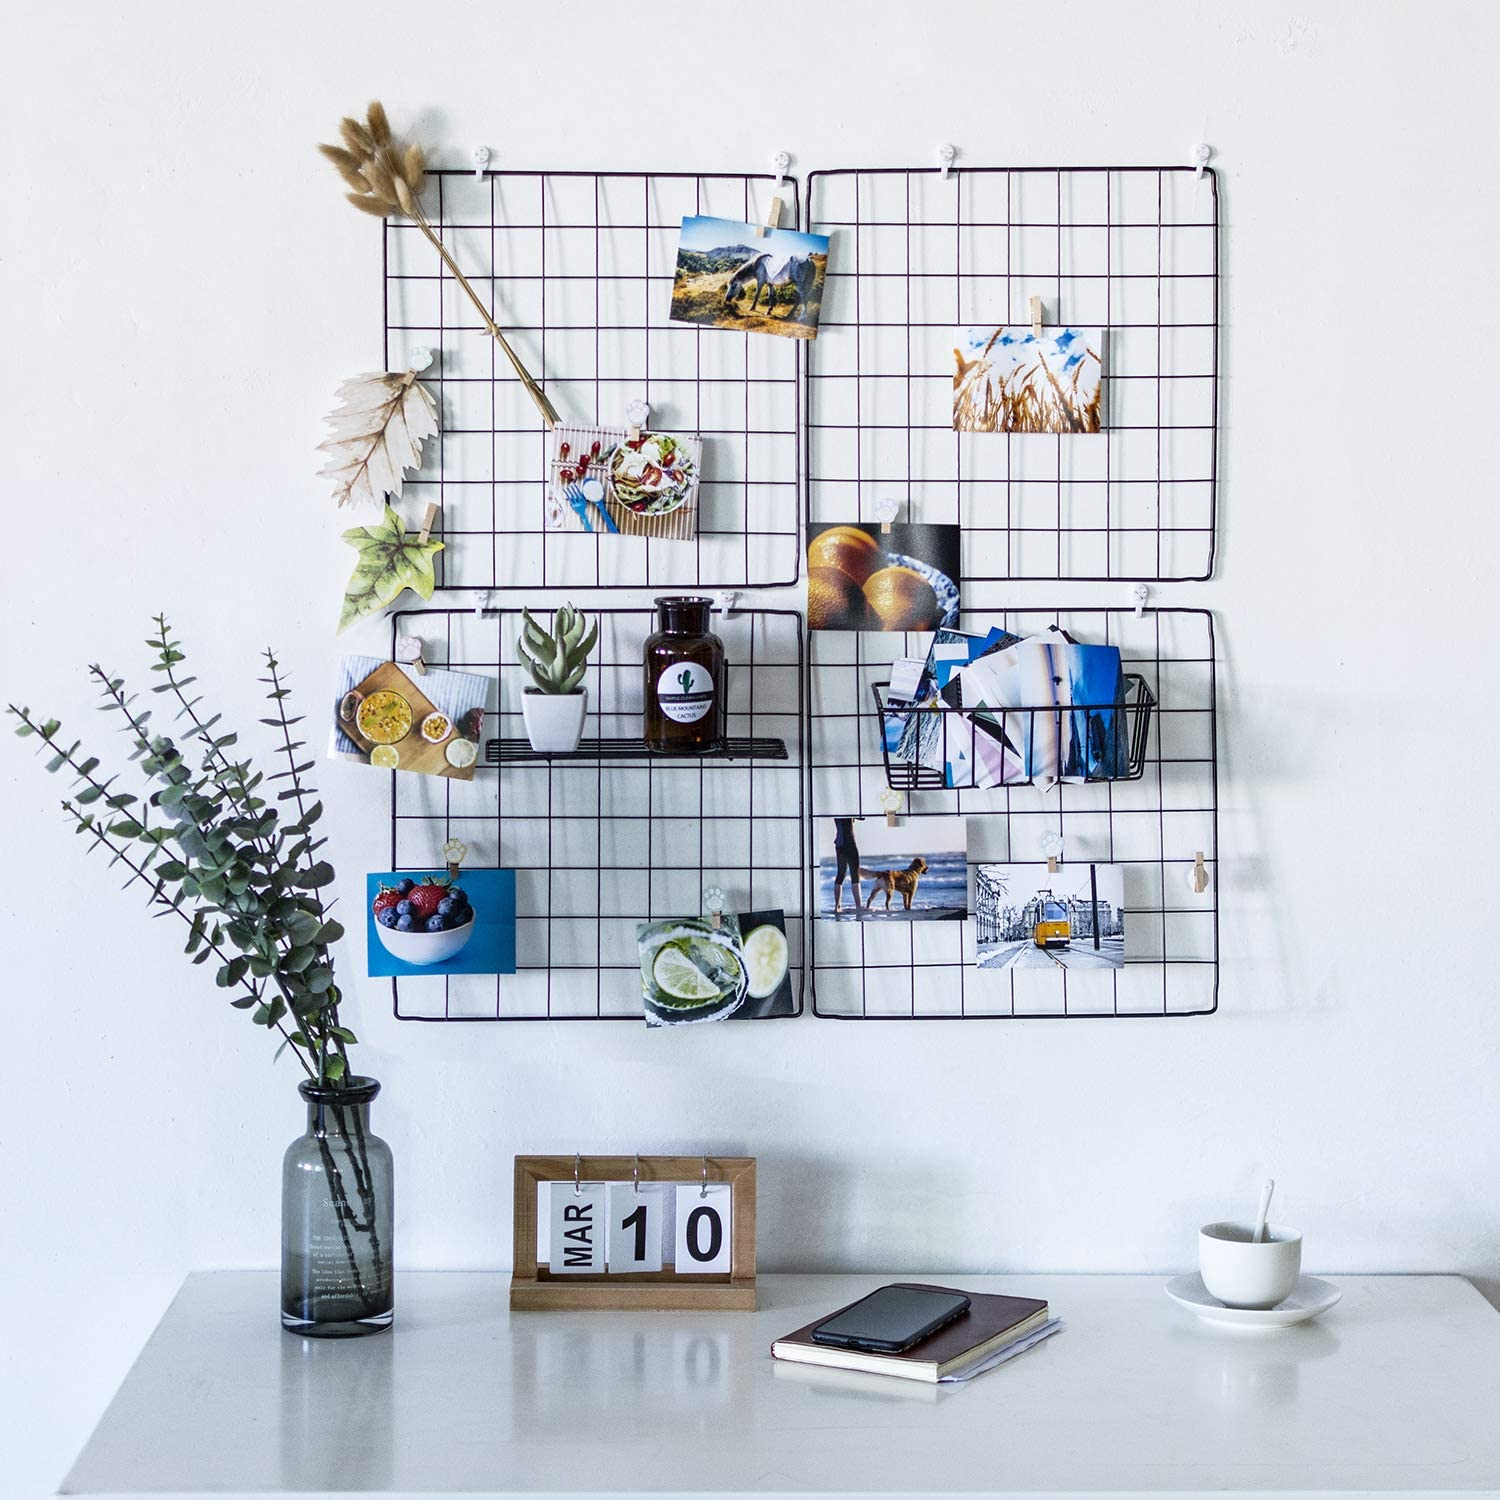 devesanter DS Grid Photo Wall Wire Grid Panel Picture Display Iron Decorative Rack Photograph Wall Ins Display Photo Wall 12x12 Inches Set of 4 (Black)